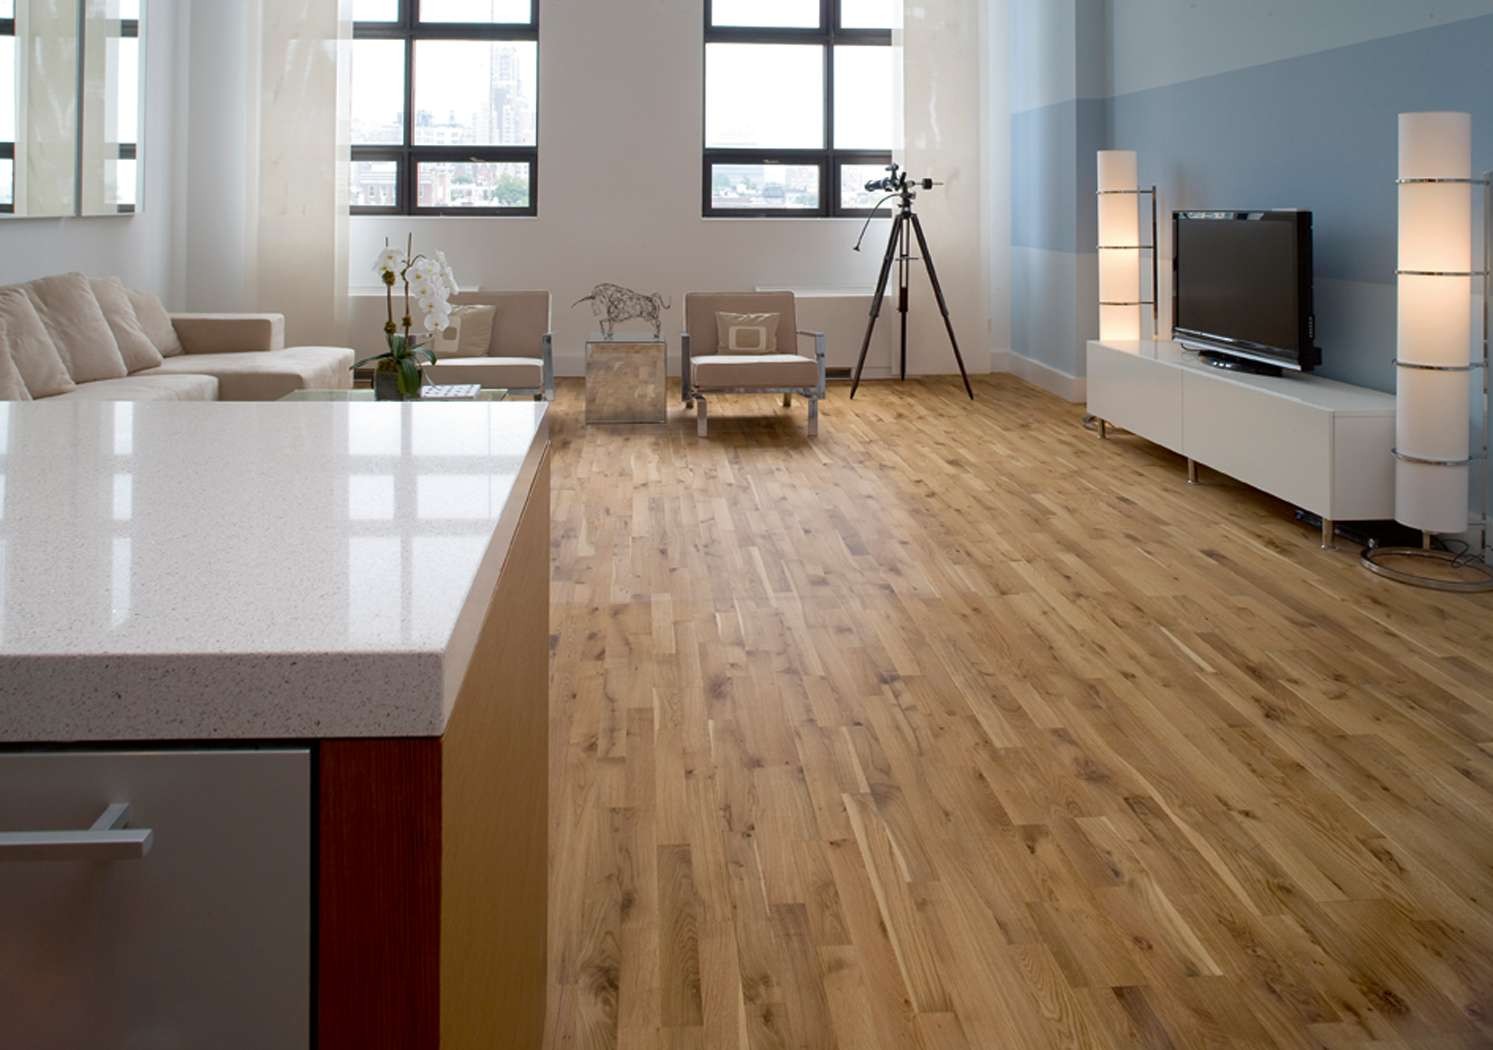 contemporary laminate wooden floors hardwood flooring cleaned with correct how to polish wood floors ideas at PQZPXHH